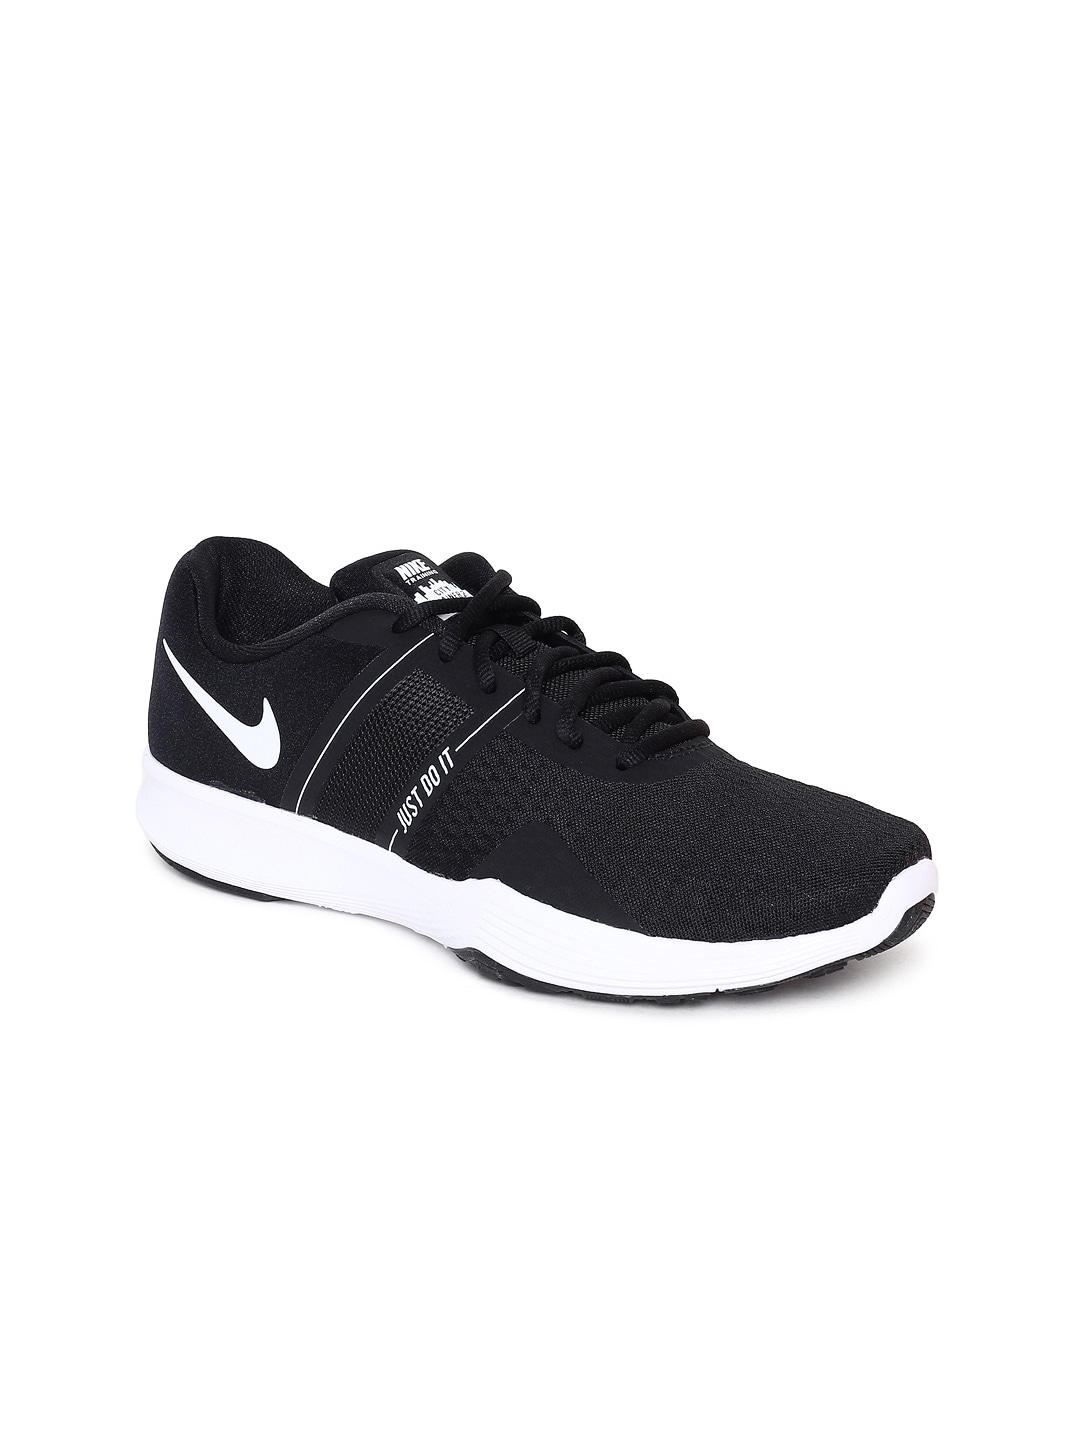 Black CITY TRAINER 2 Training or Gym Shoes